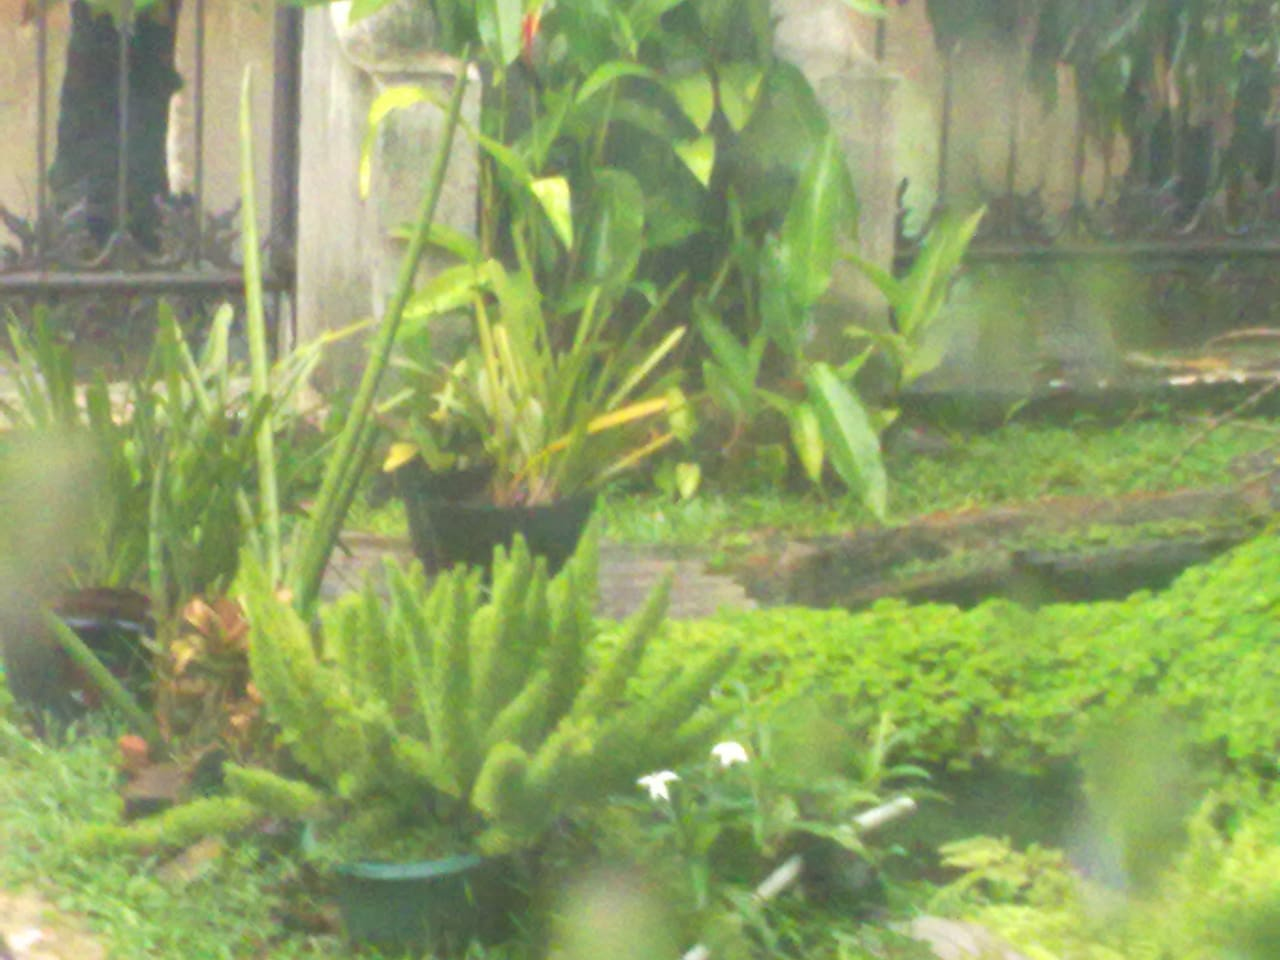 My Fishpond, you can see also through my windows